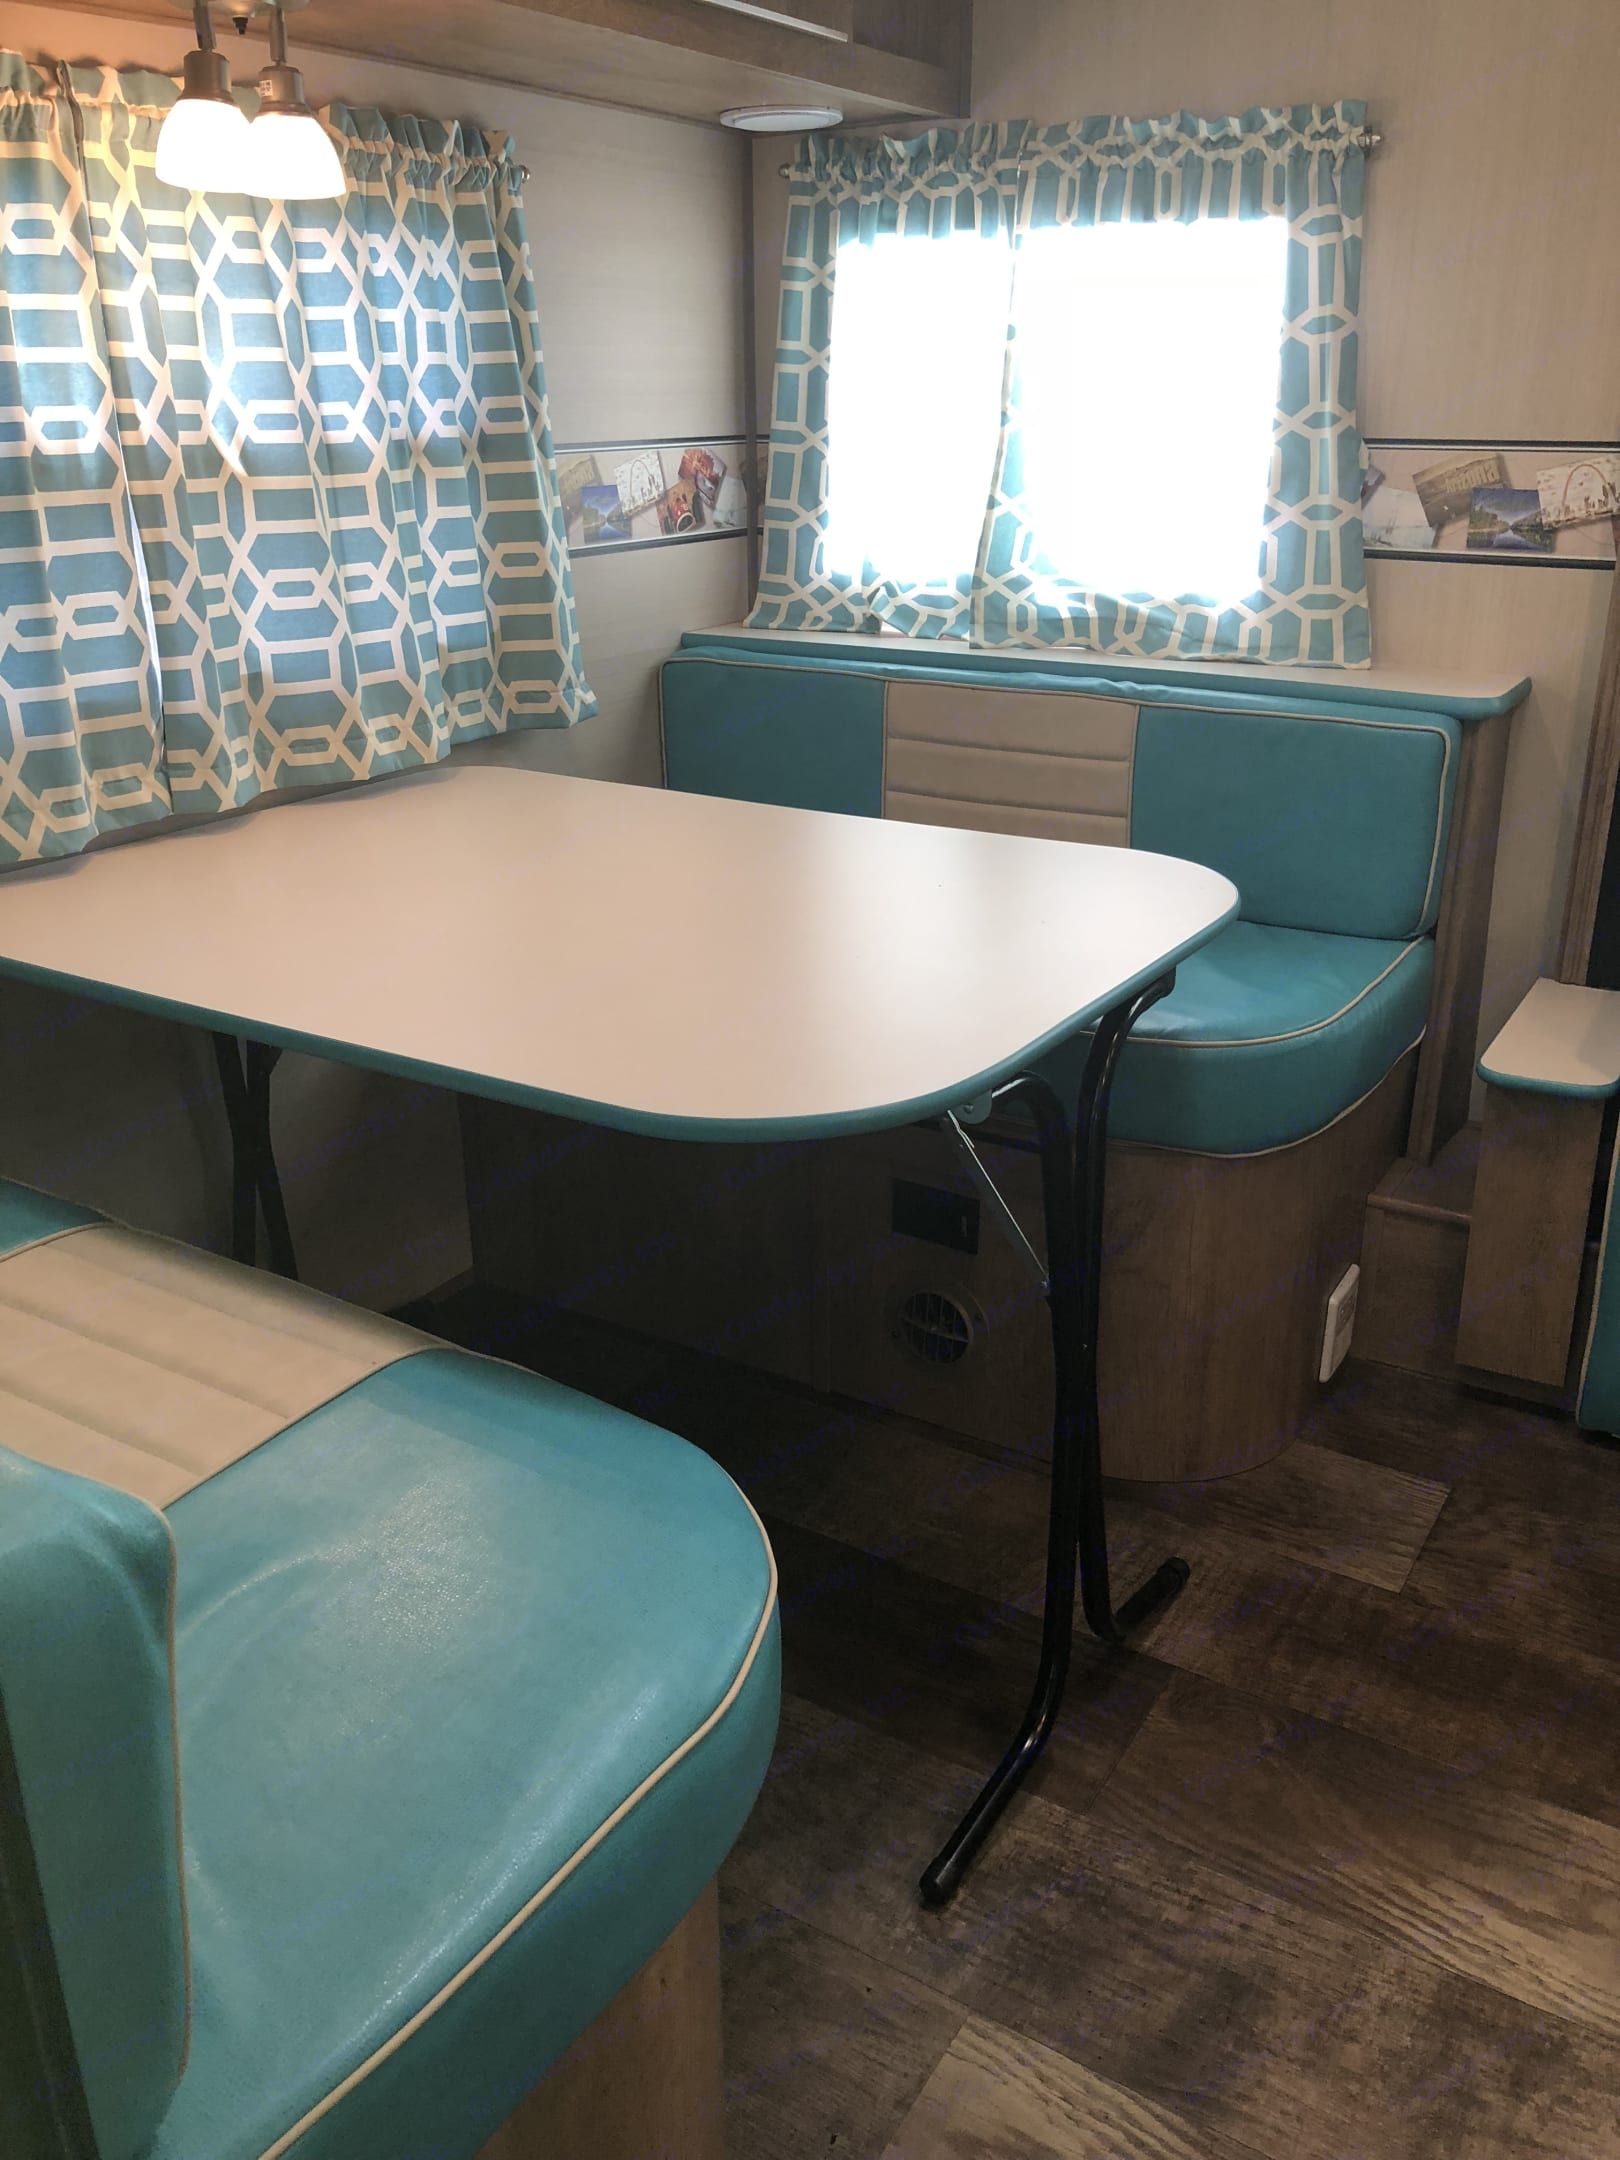 Dinette / sleeper. The table can come out and be used outside. Gulf Stream Vintage Cruiser 2018